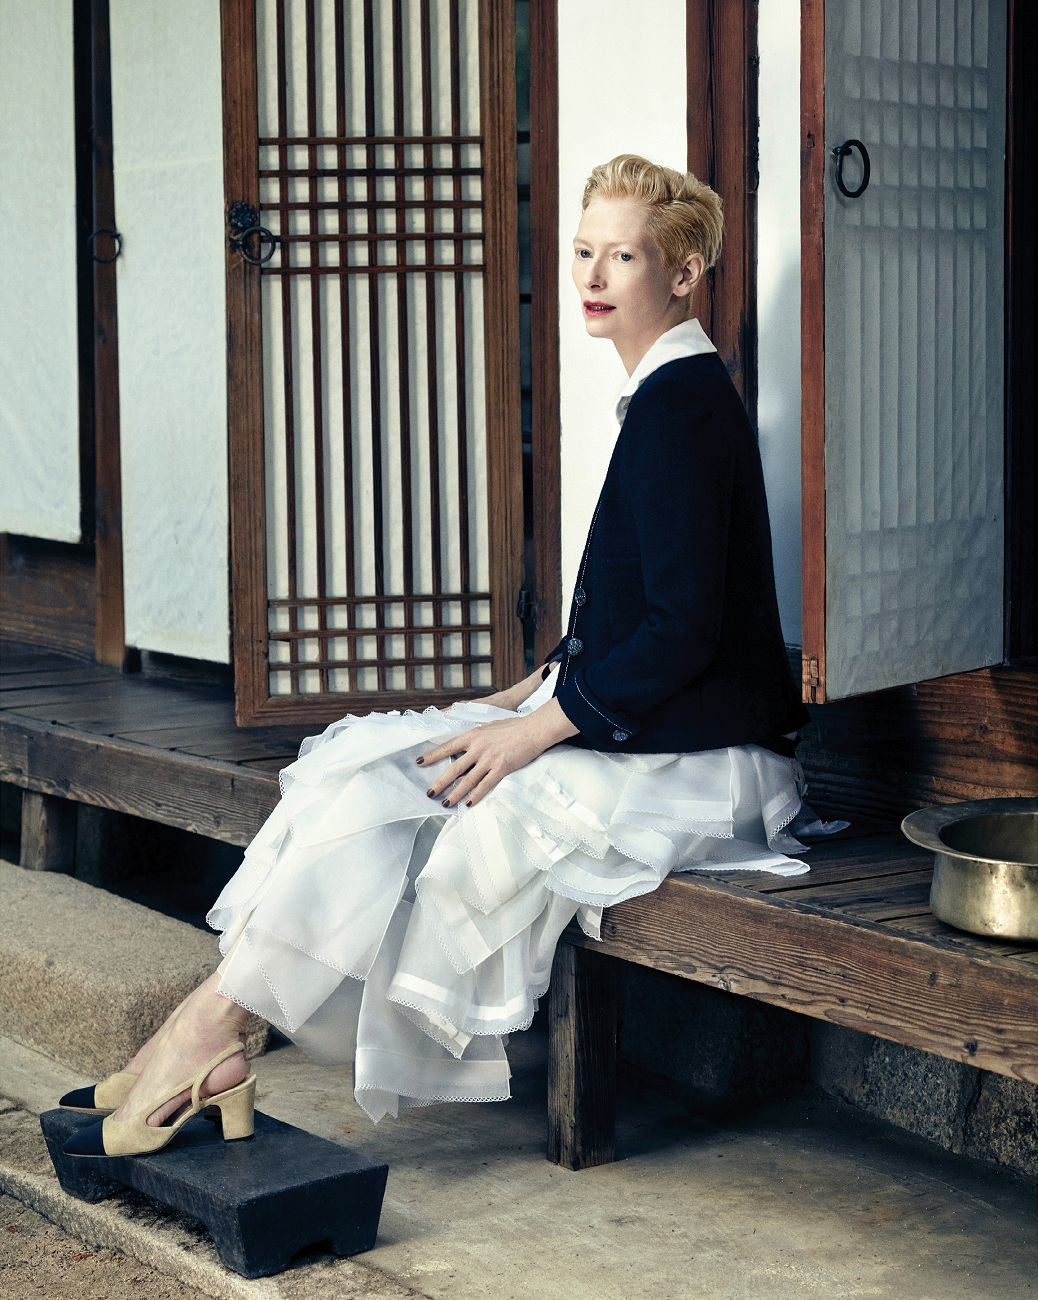 tilda-swinton-by-hong-jang-hyun-vogue-korea-august-2015-06